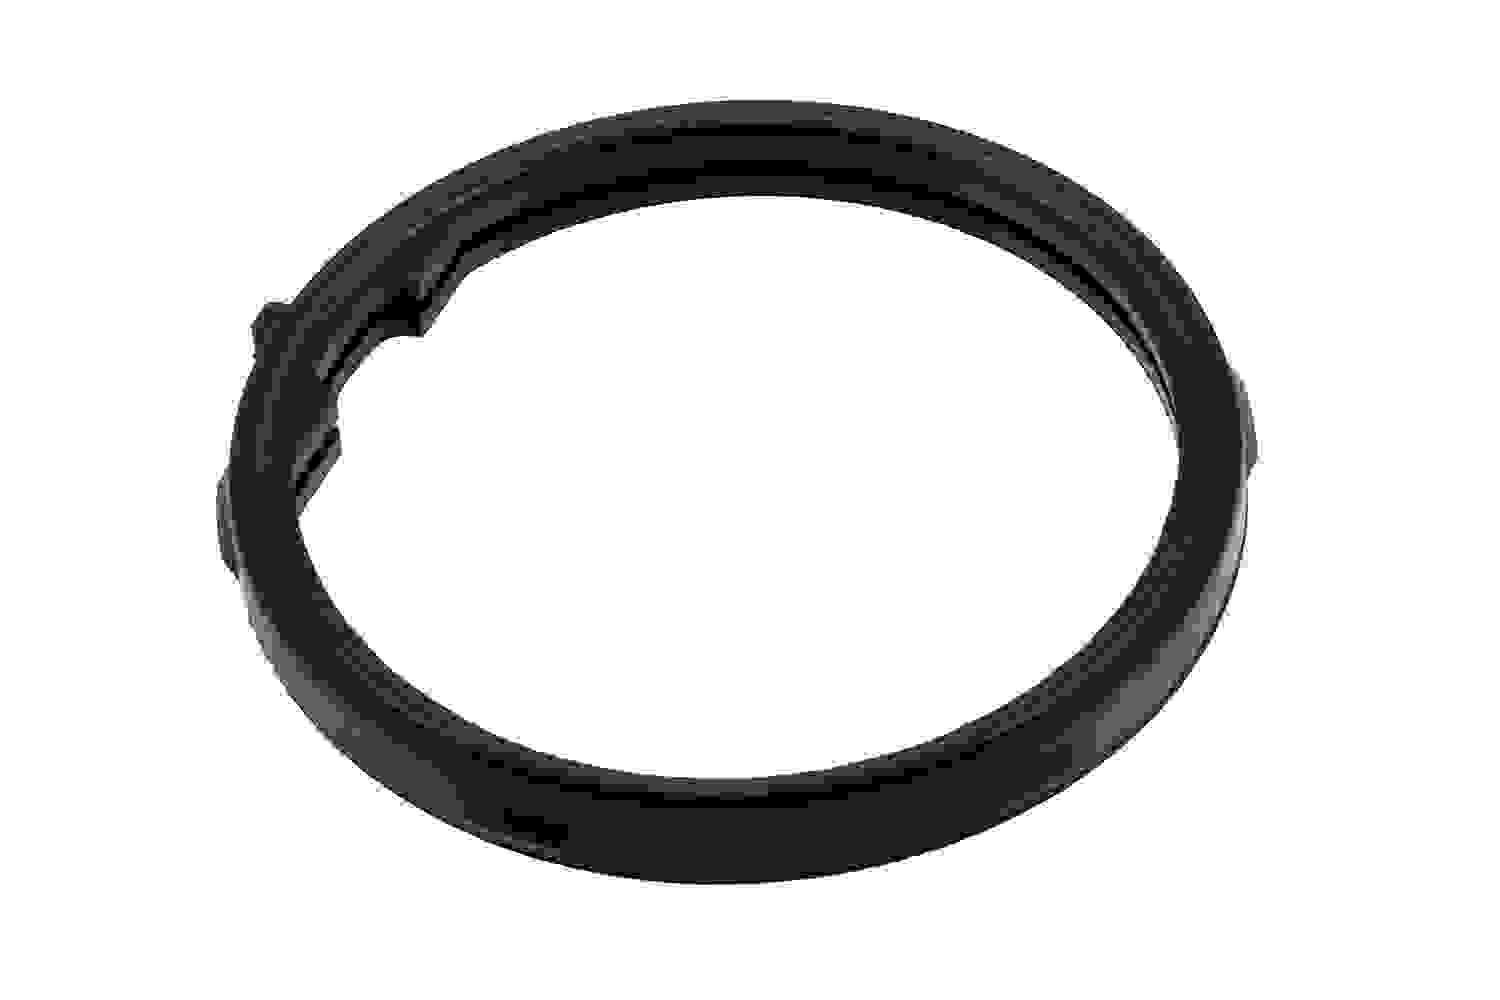 ACDELCO GM ORIGINAL EQUIPMENT - Engine Coolant Water Inlet Seal - DCB 12587397